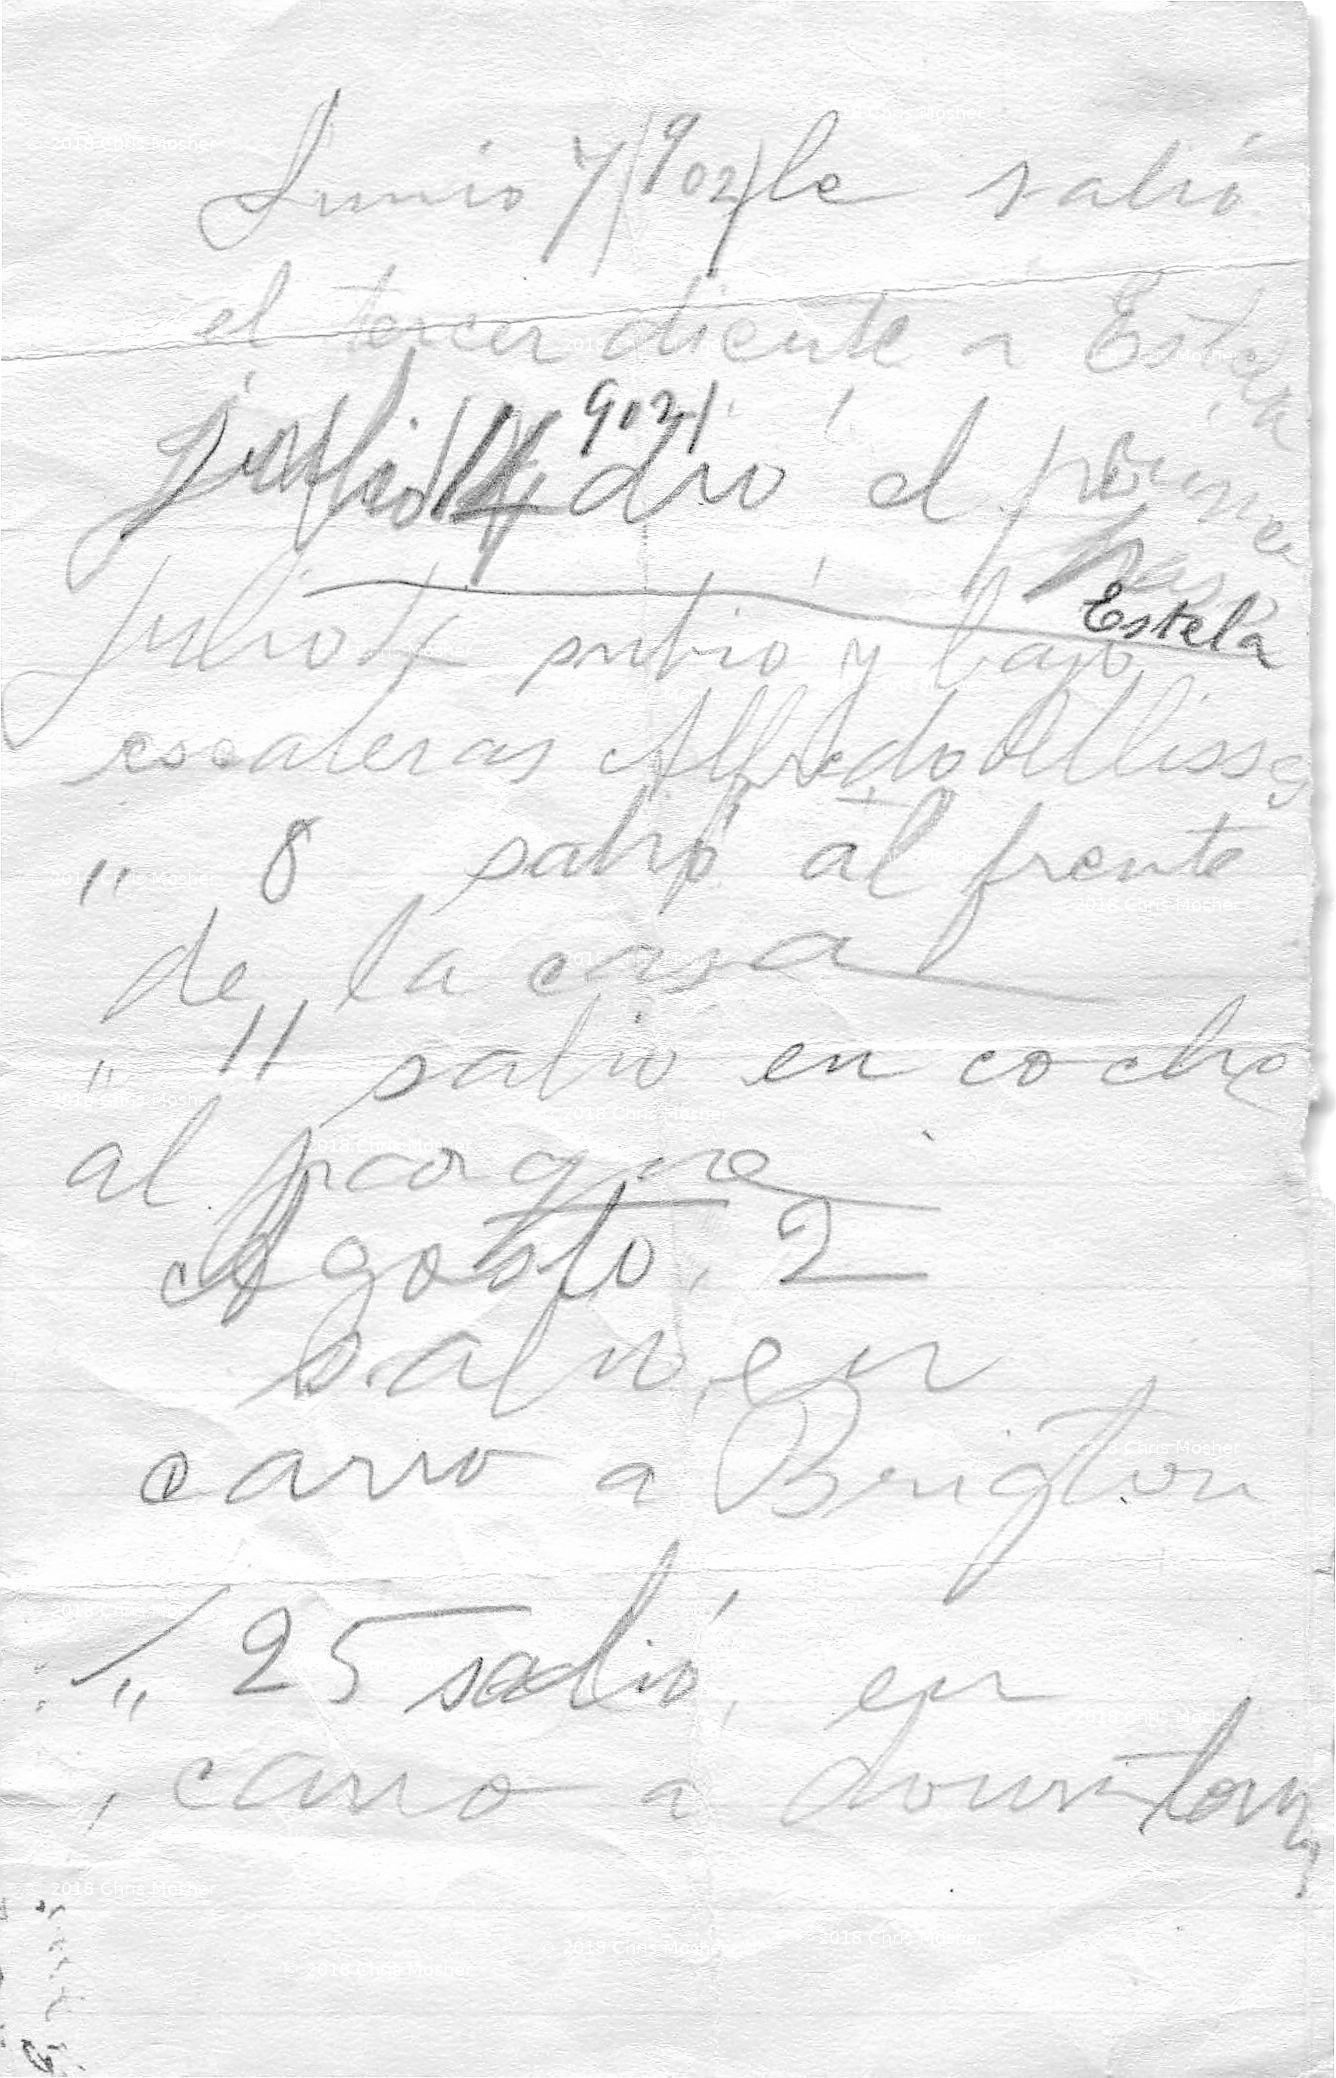 dudley joseph letters genealogy fixed christopher alan mosher  beginning of page 35 a transcription of this page is not available